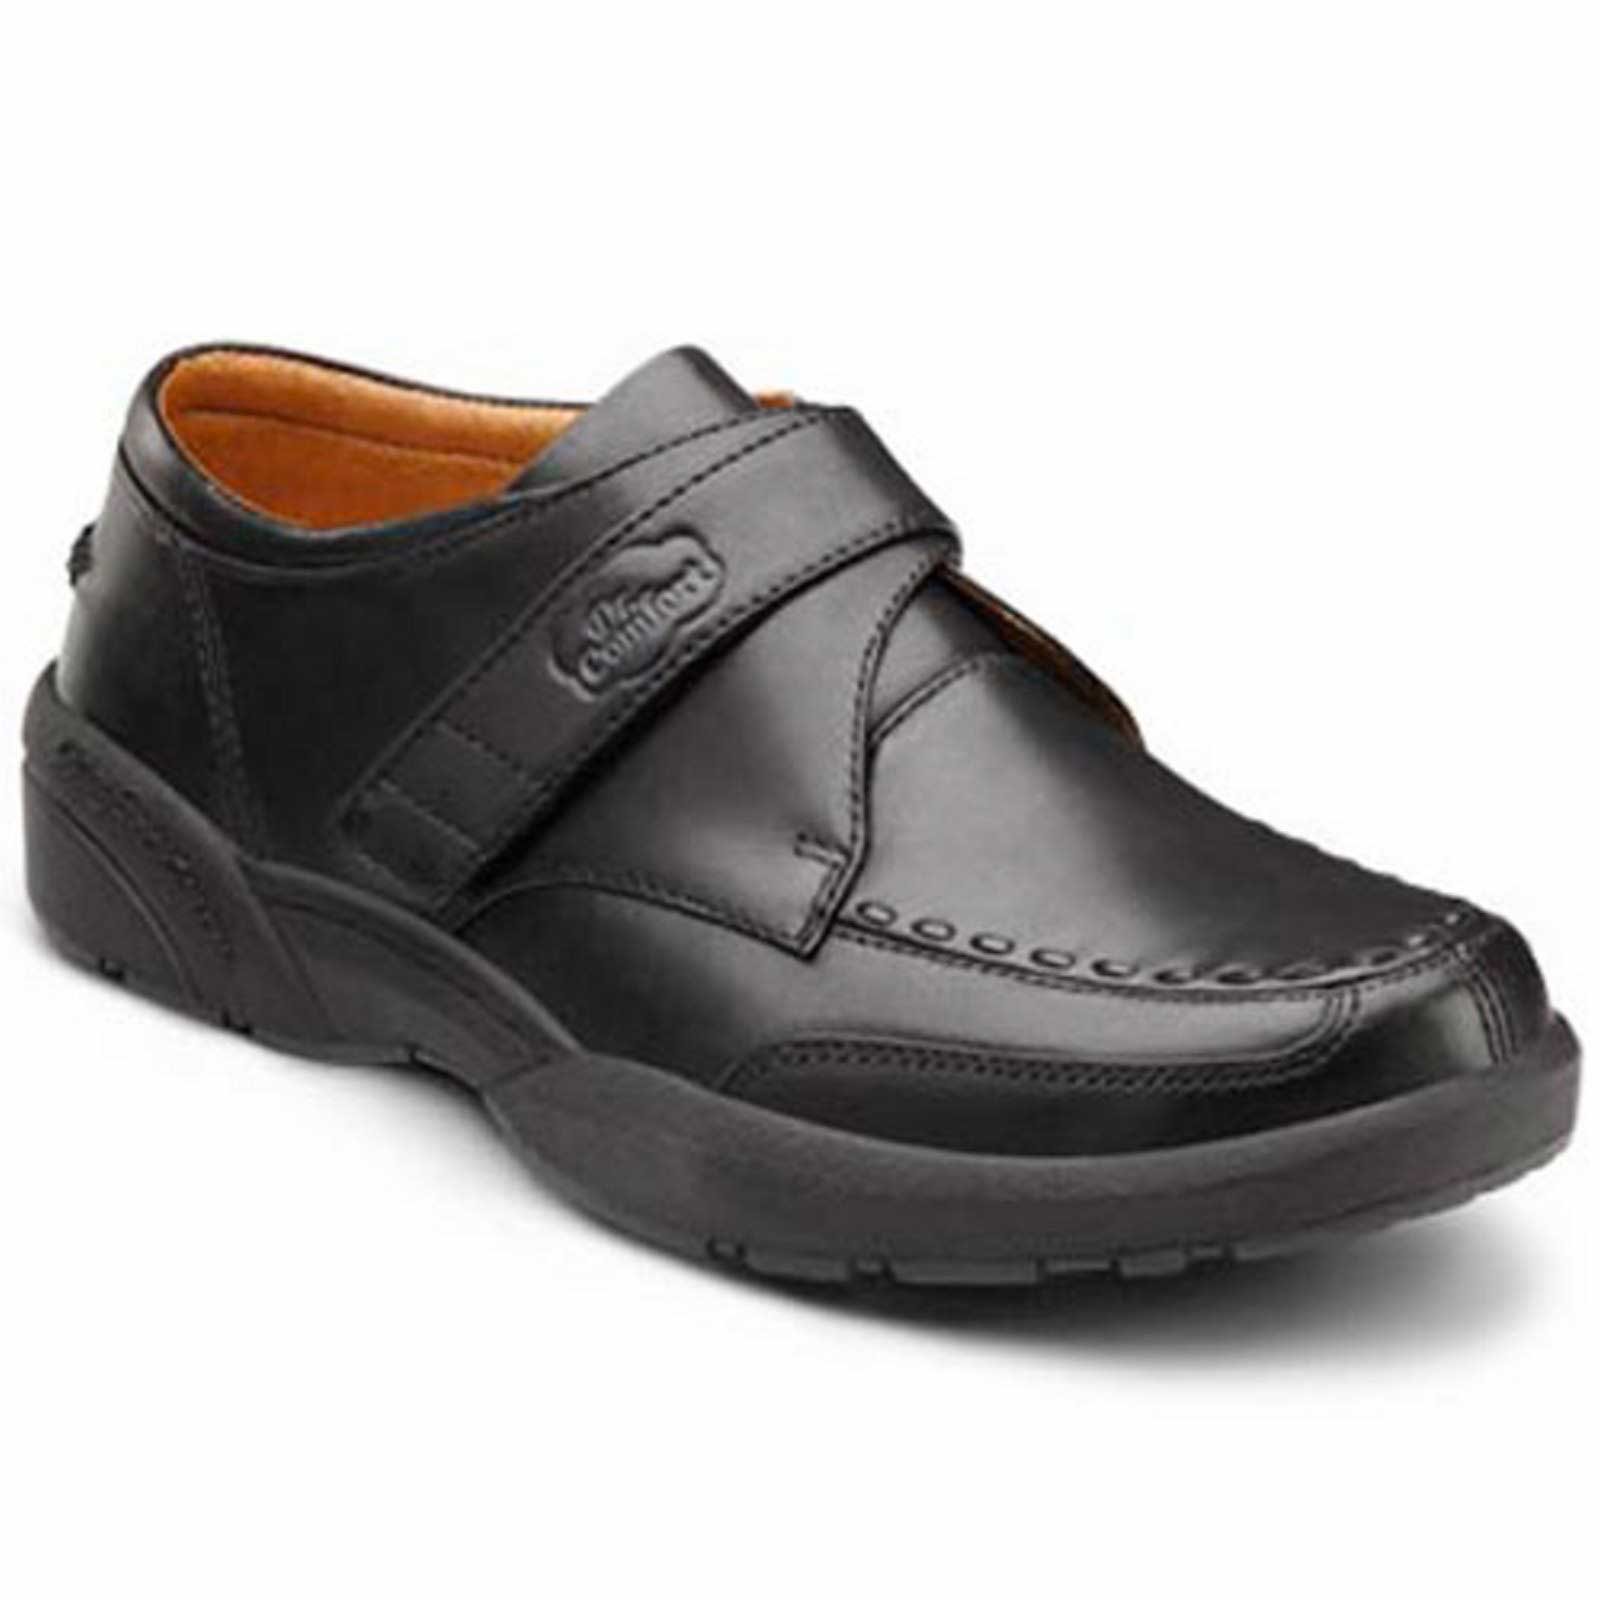 Discussion on this topic: Comfort Shoes, comfort-shoes/